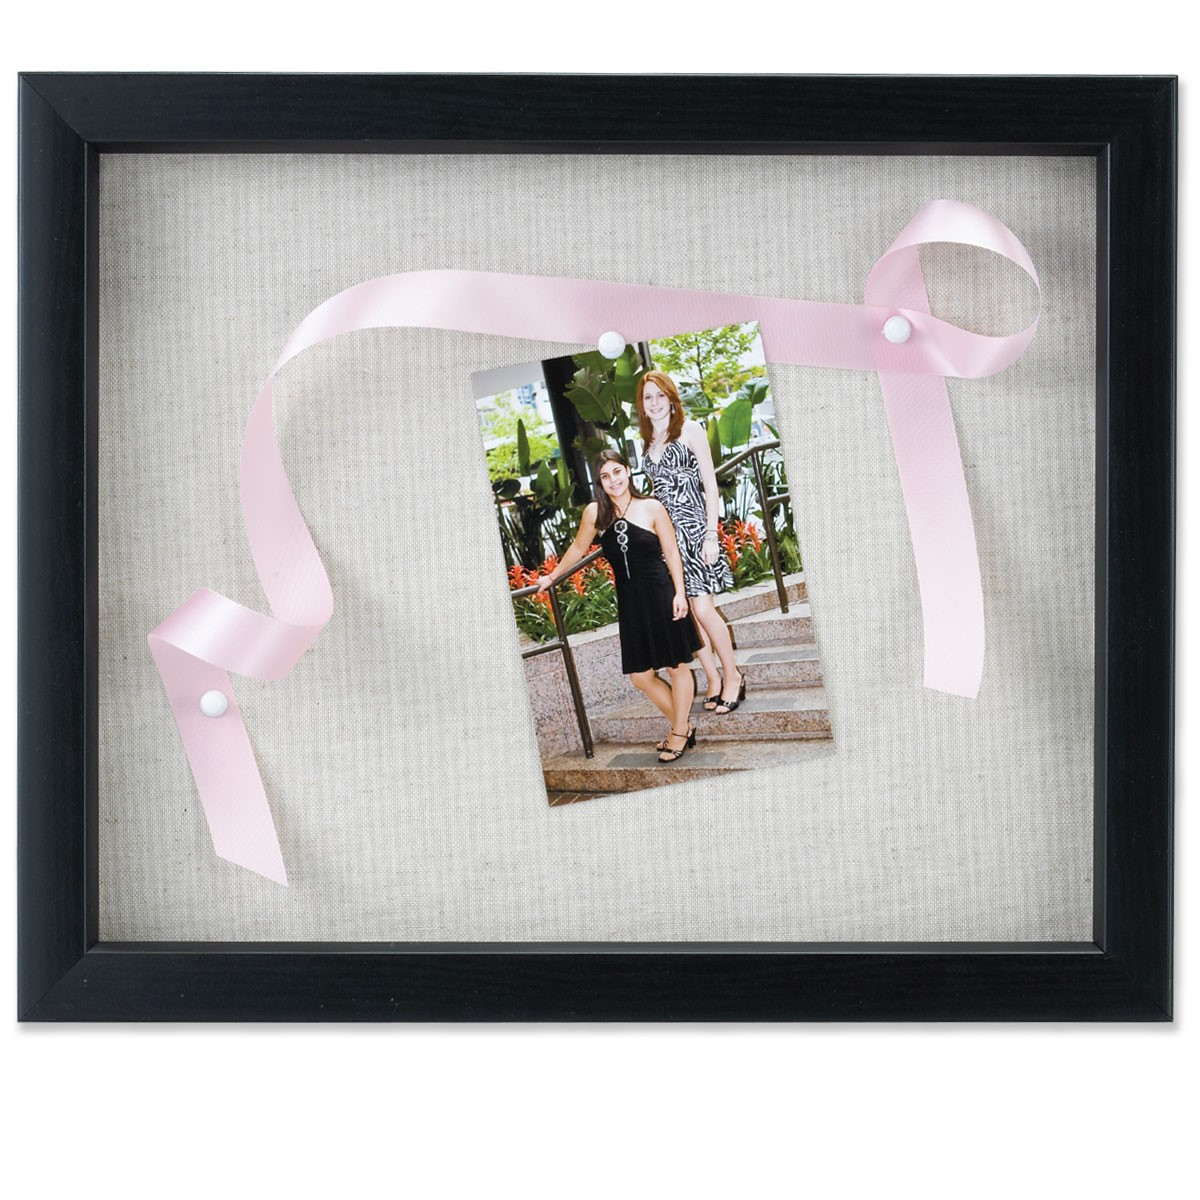 11x14 Black Shadow Box Frame - Linen Inner Display Board